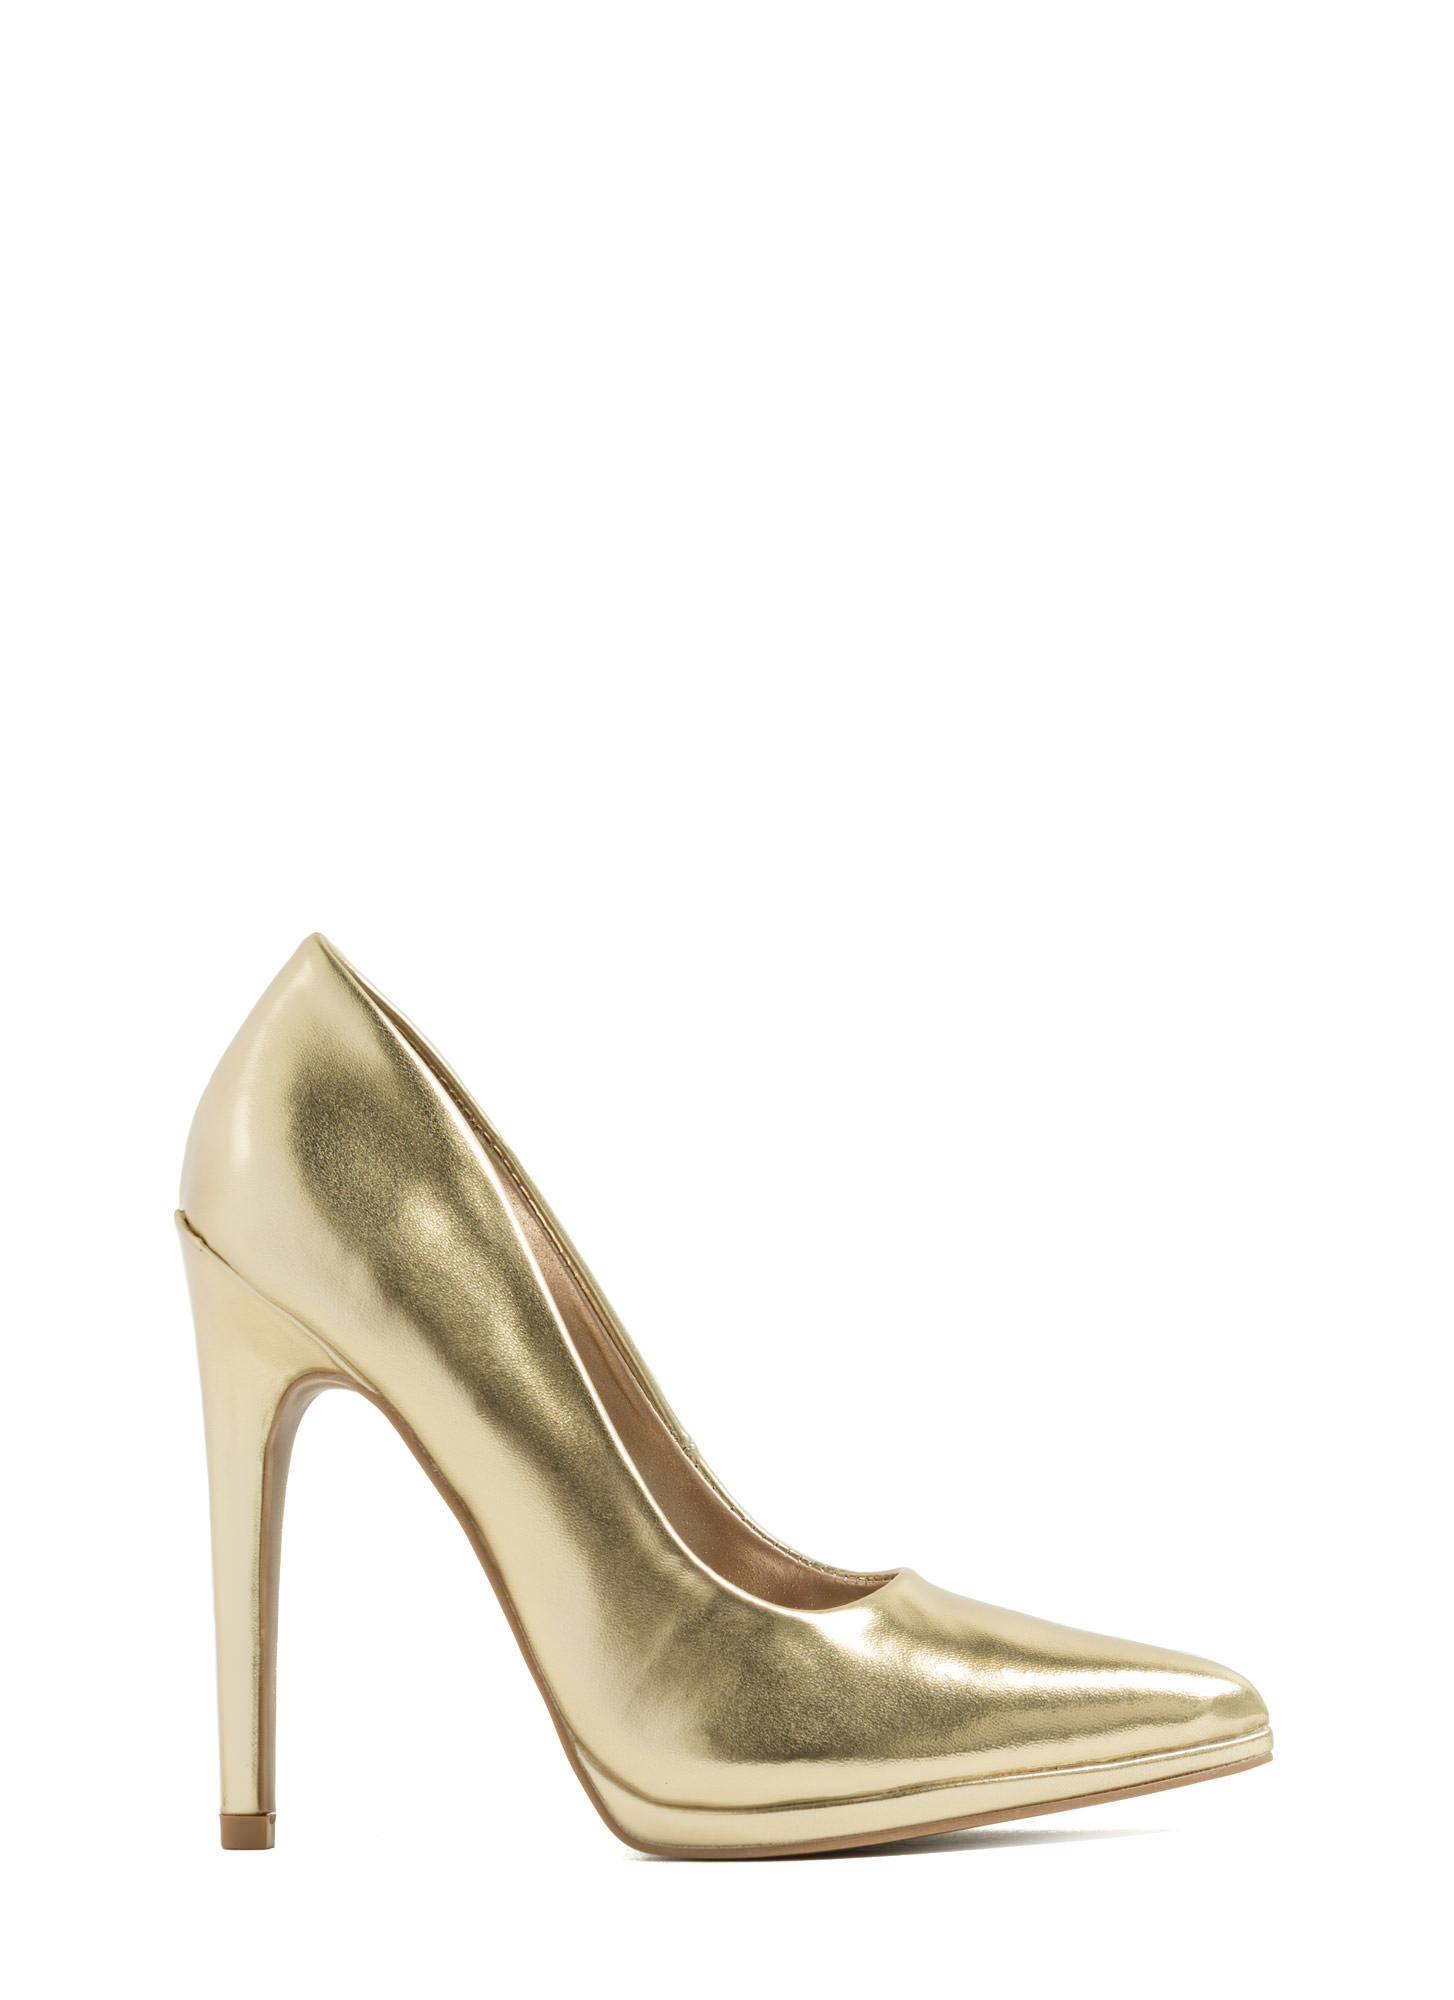 Gold Heels On Sale - Is Heel